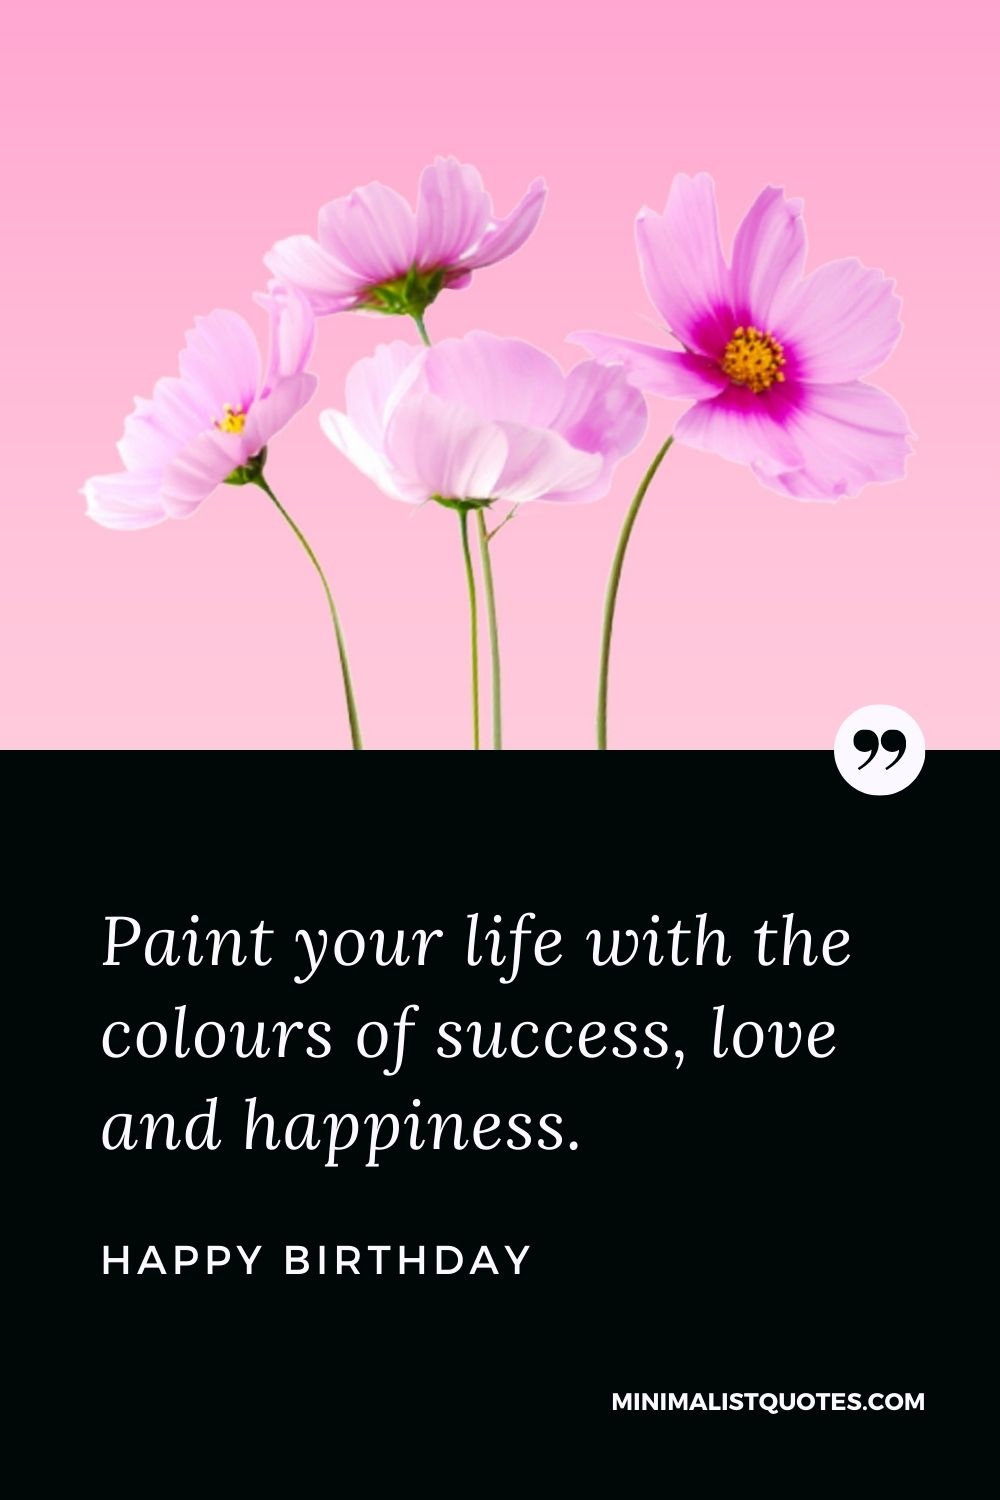 Happy Birthday Wishes - Paint your life with the colours of success, love and happiness.